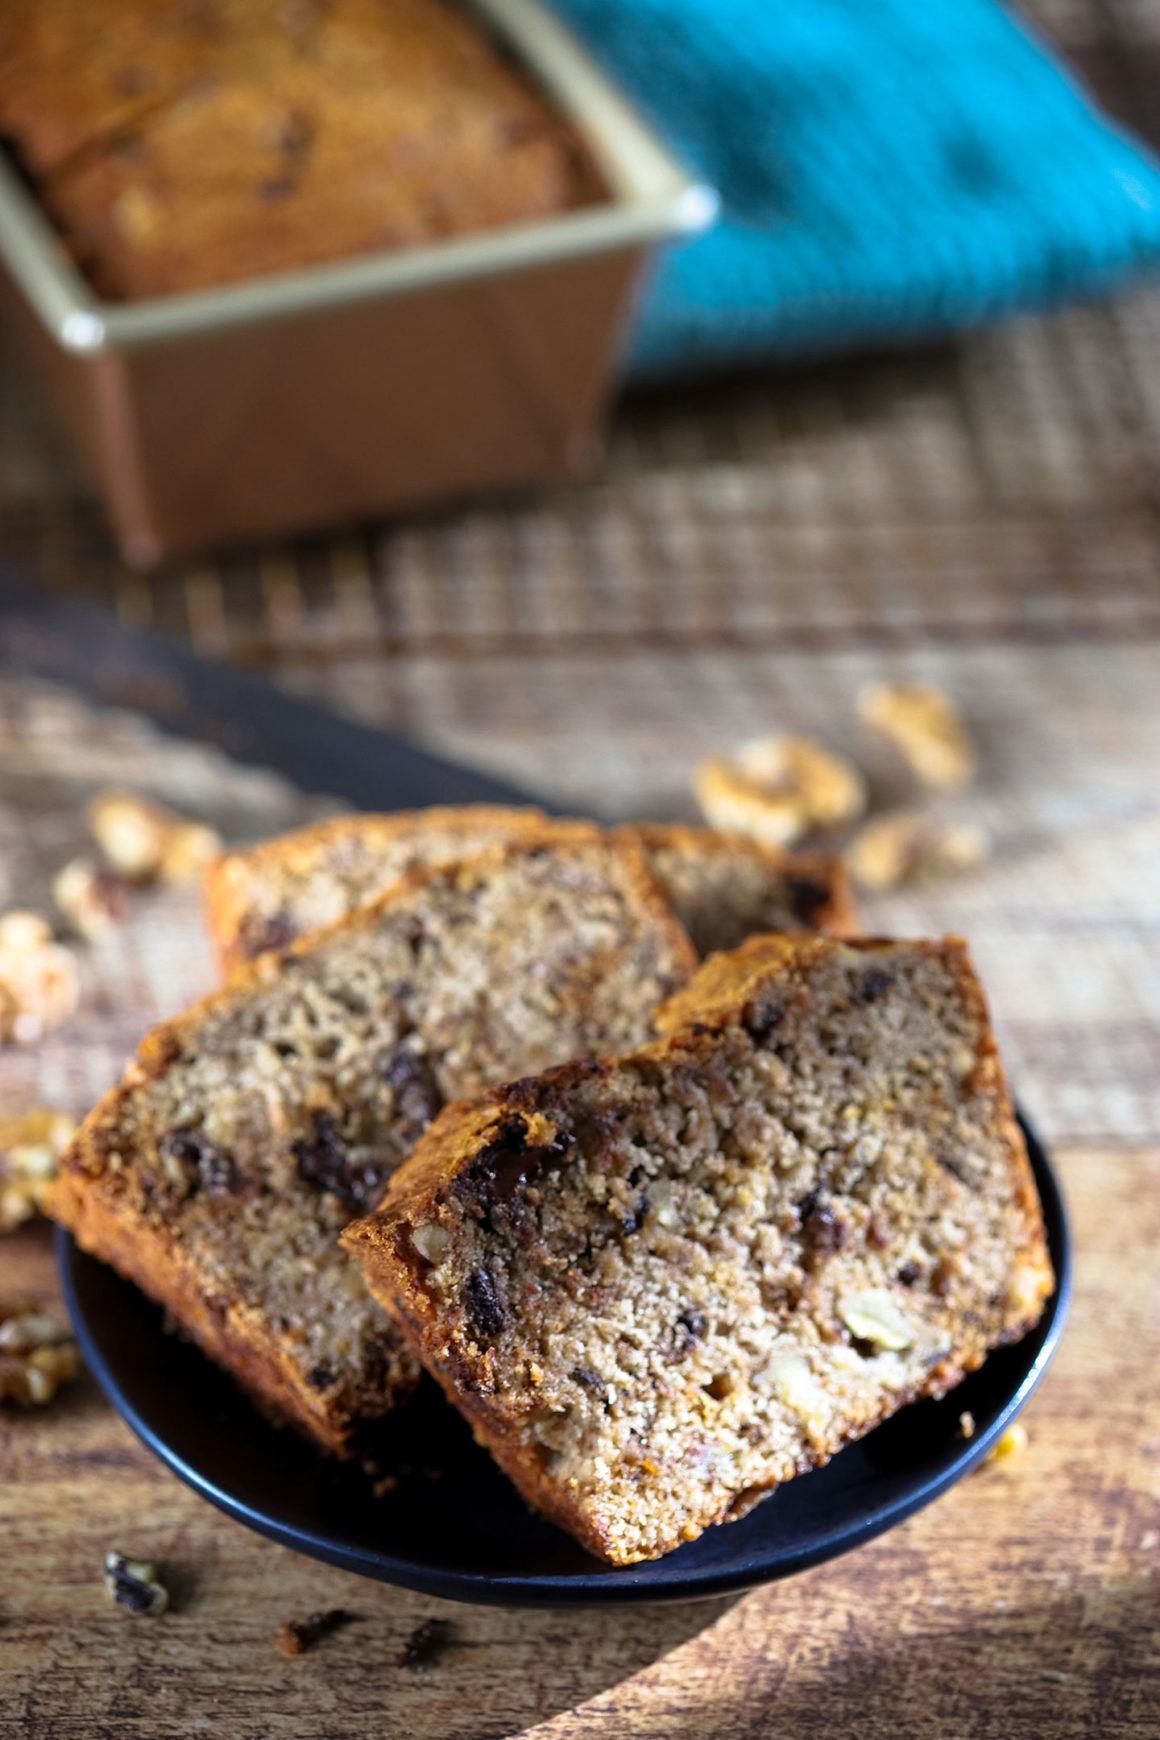 Banana Bread Slices on Plate